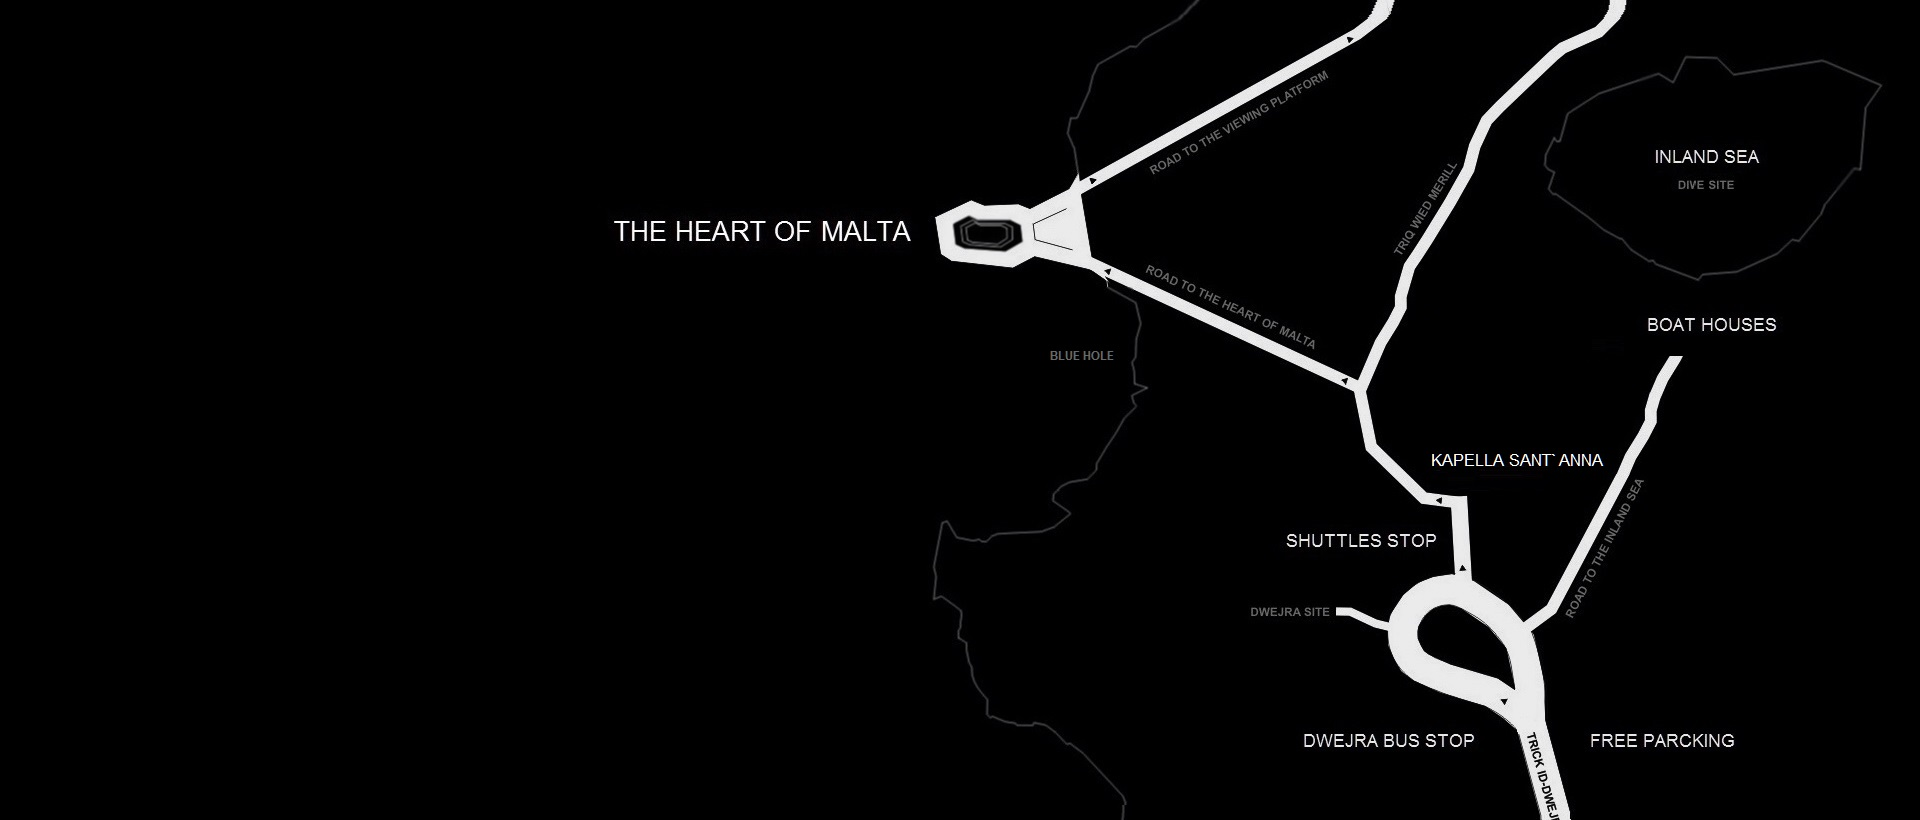 THE HEART OF MALTA